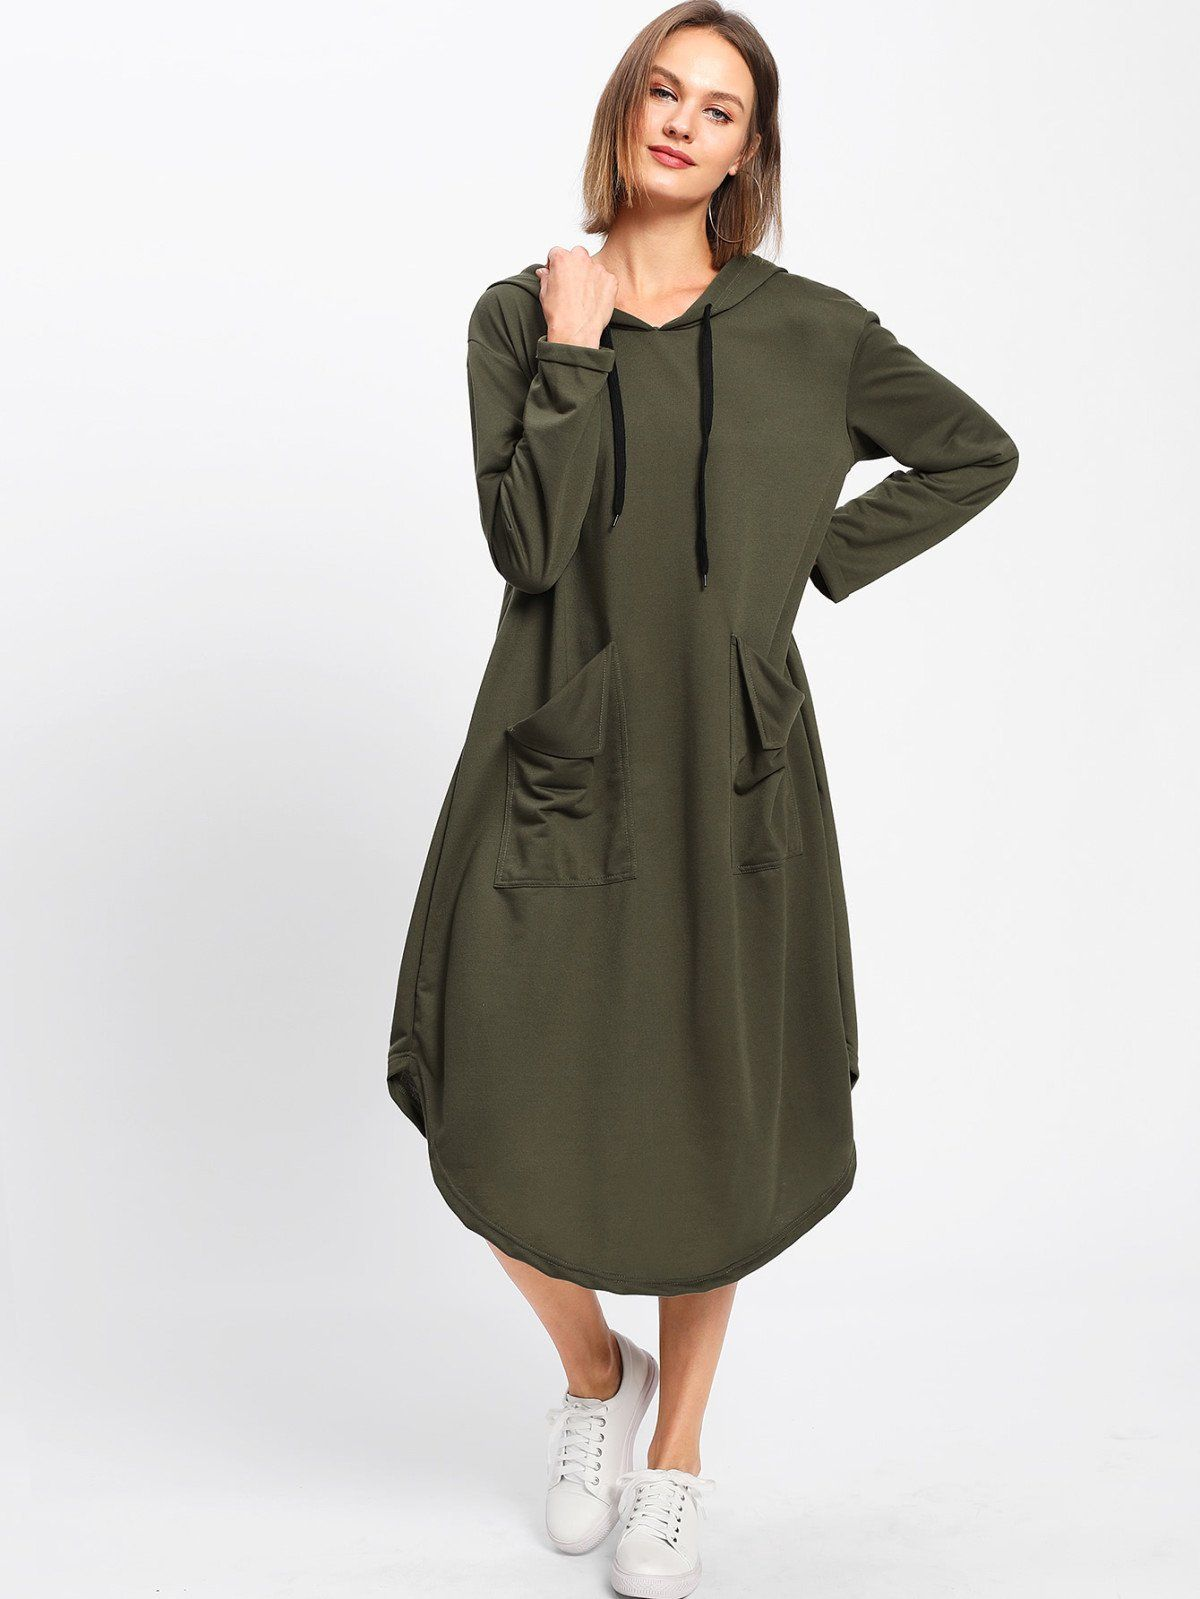 Dual pocket hooded dress hooded dress spring and products